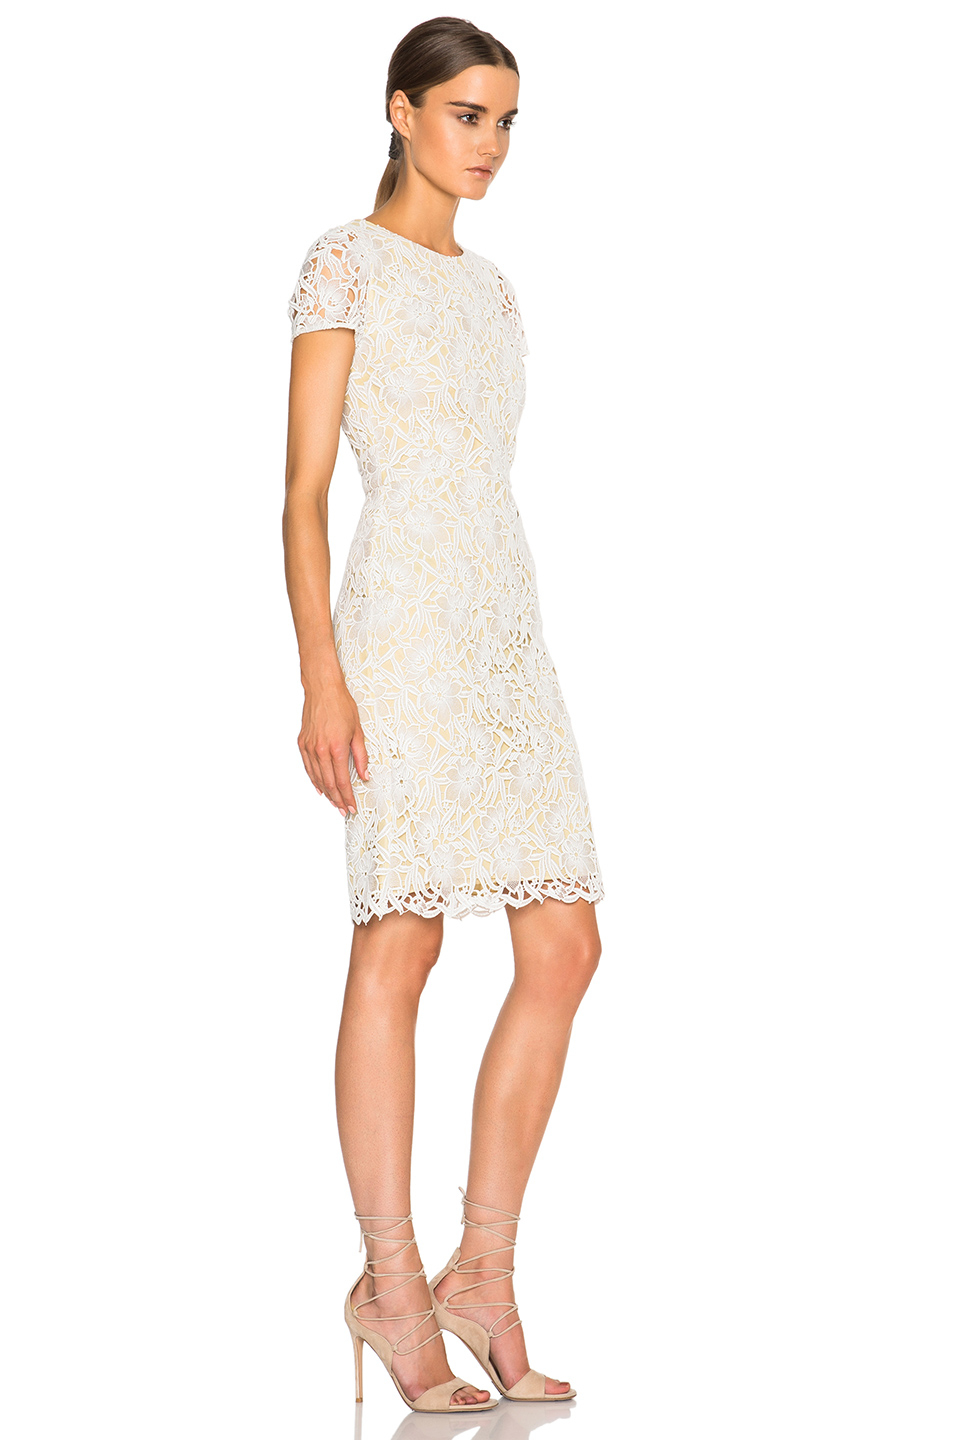 White, Short Sleeve Dresses: Find your perfect dress featuring tons of styles and fashions from free-cabinetfile-downloaded.ga Your Online Women's Clothing Store! Get 5% in rewards with Club O!